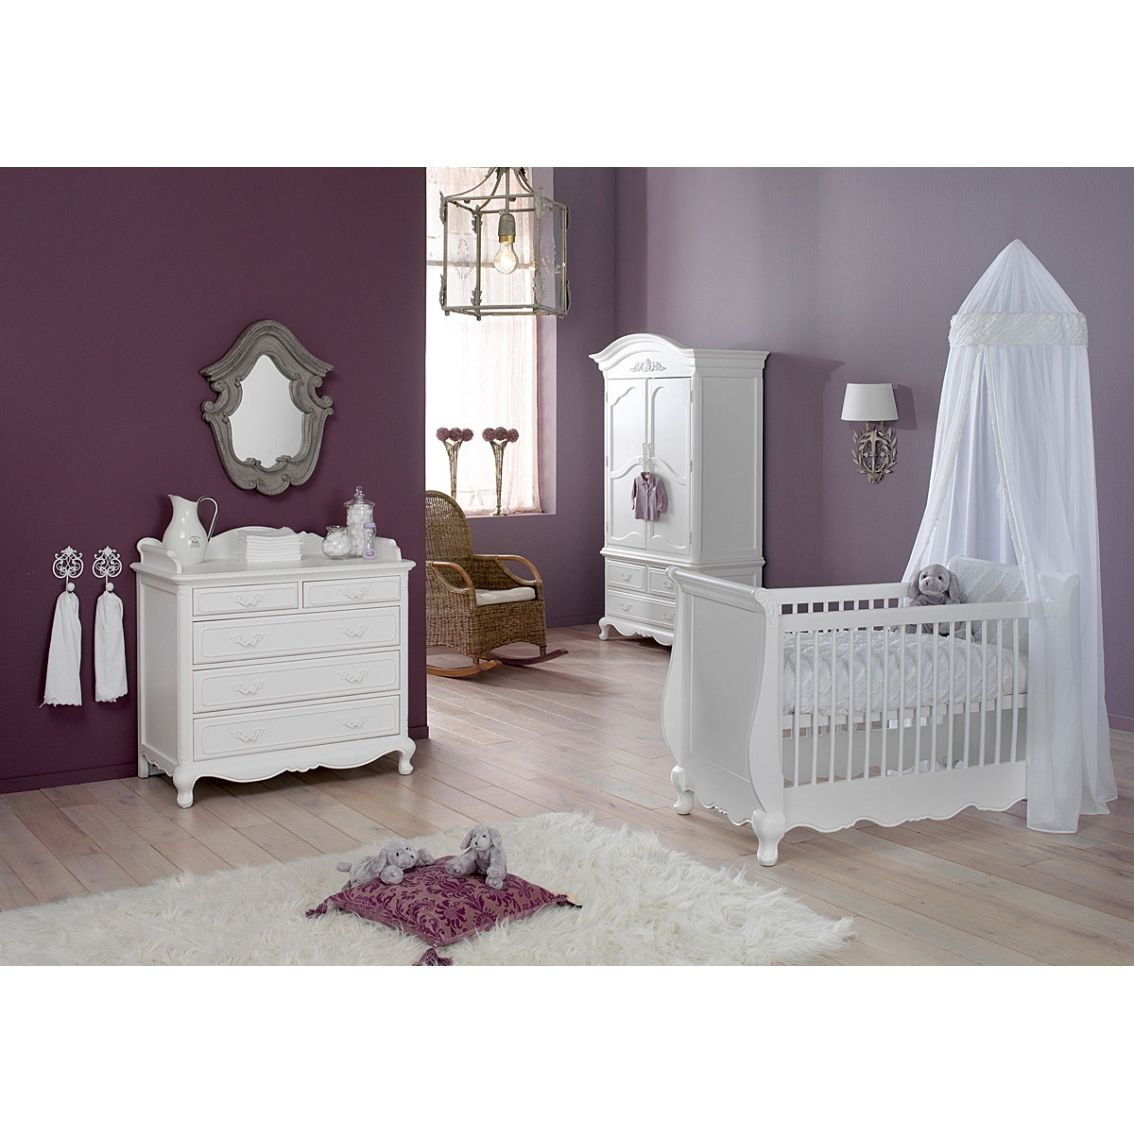 Adorable Nursery Furniture In White Accents For Uni Babies Elegant Purple Room Interior